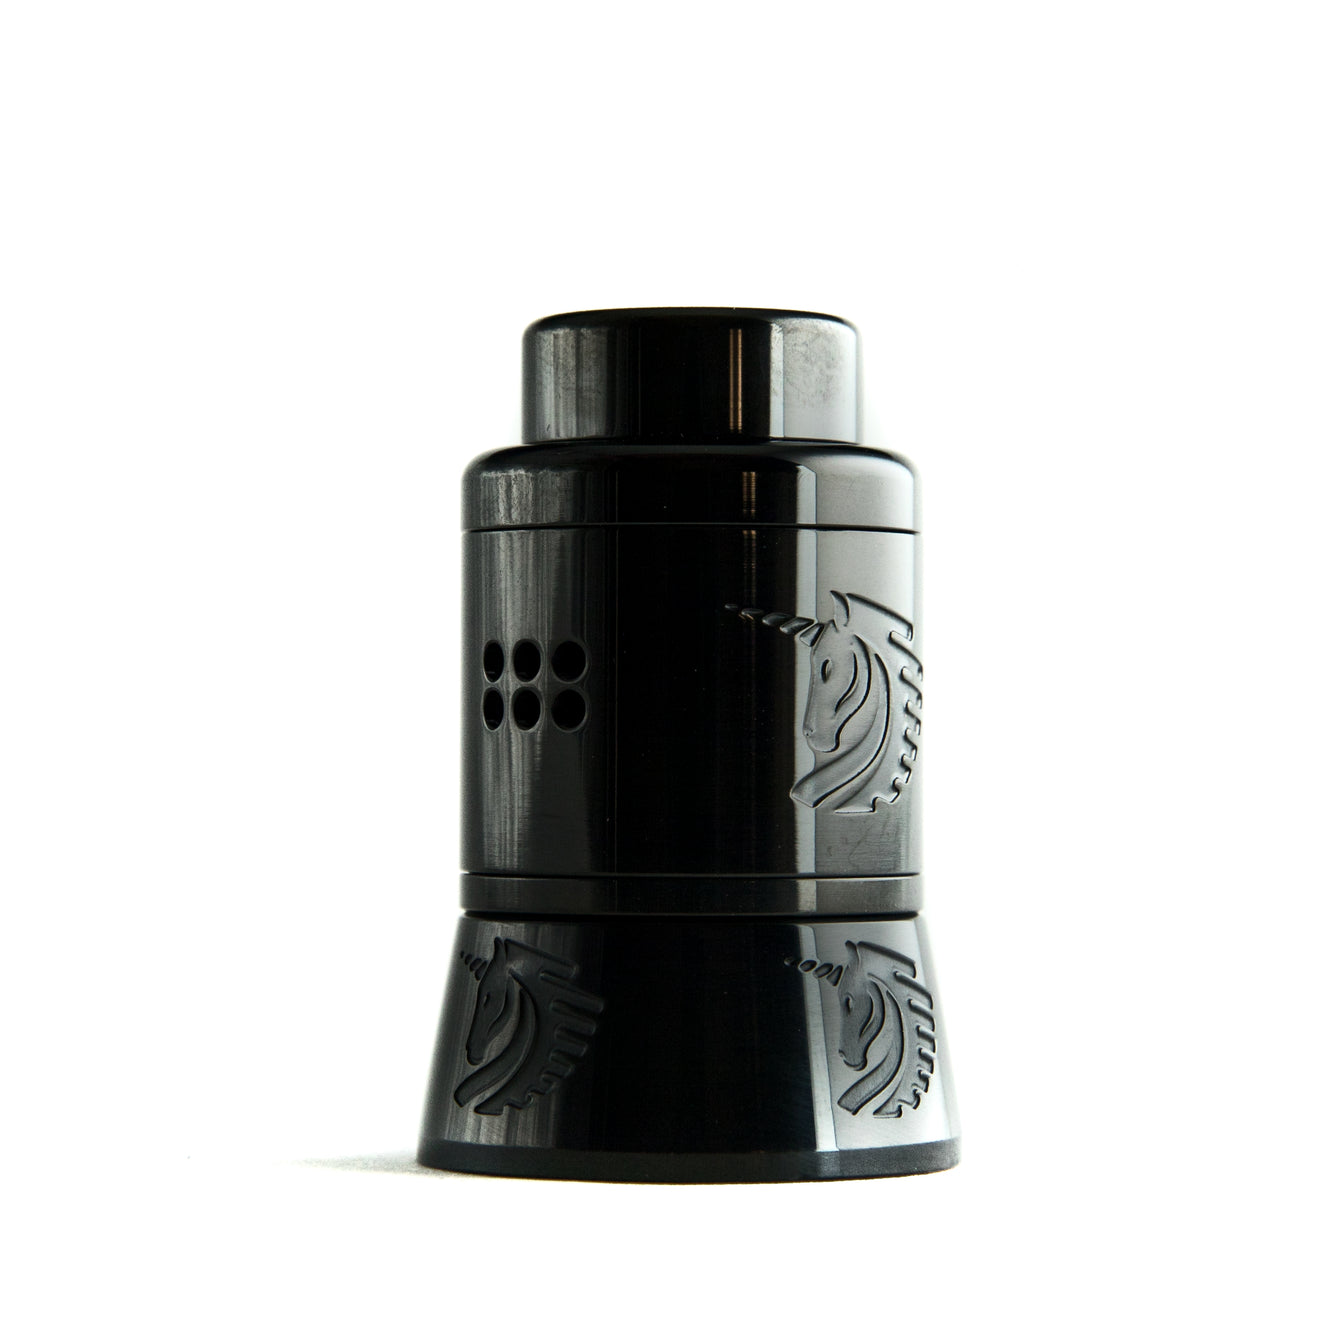 25mm Polish Black Unicorn RDA